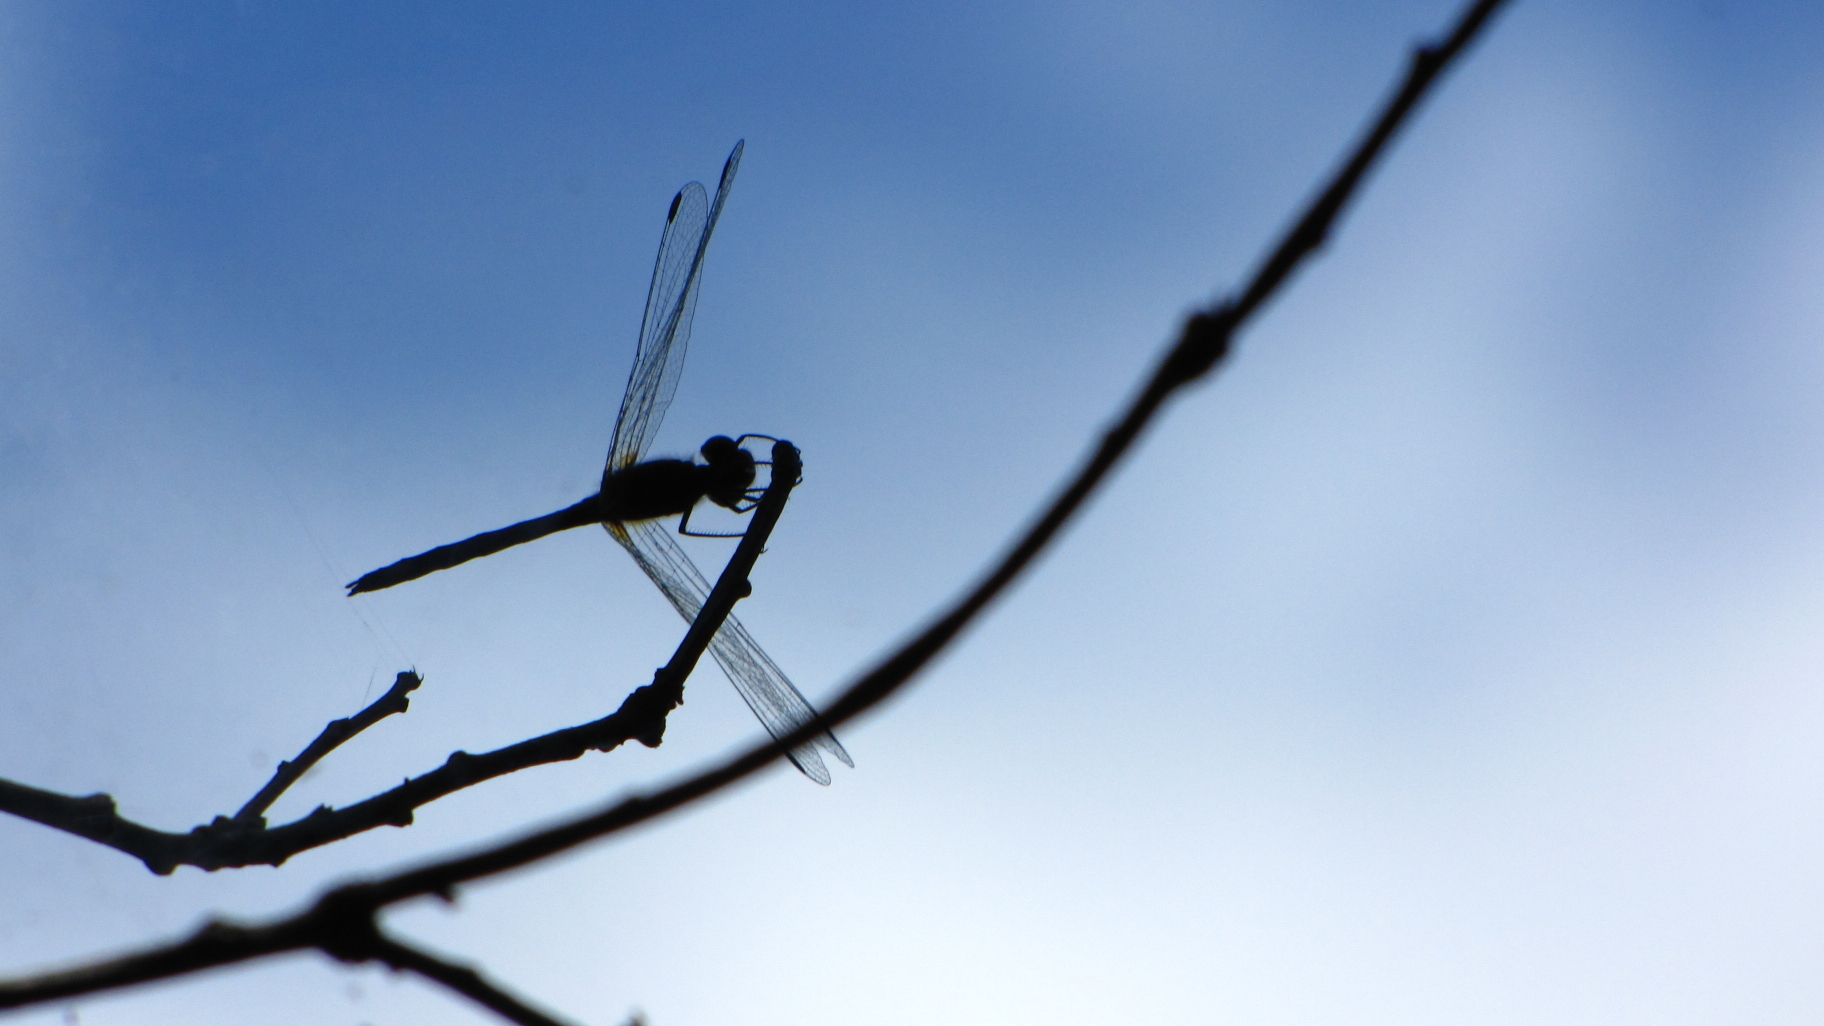 Dragonfly Silhouette